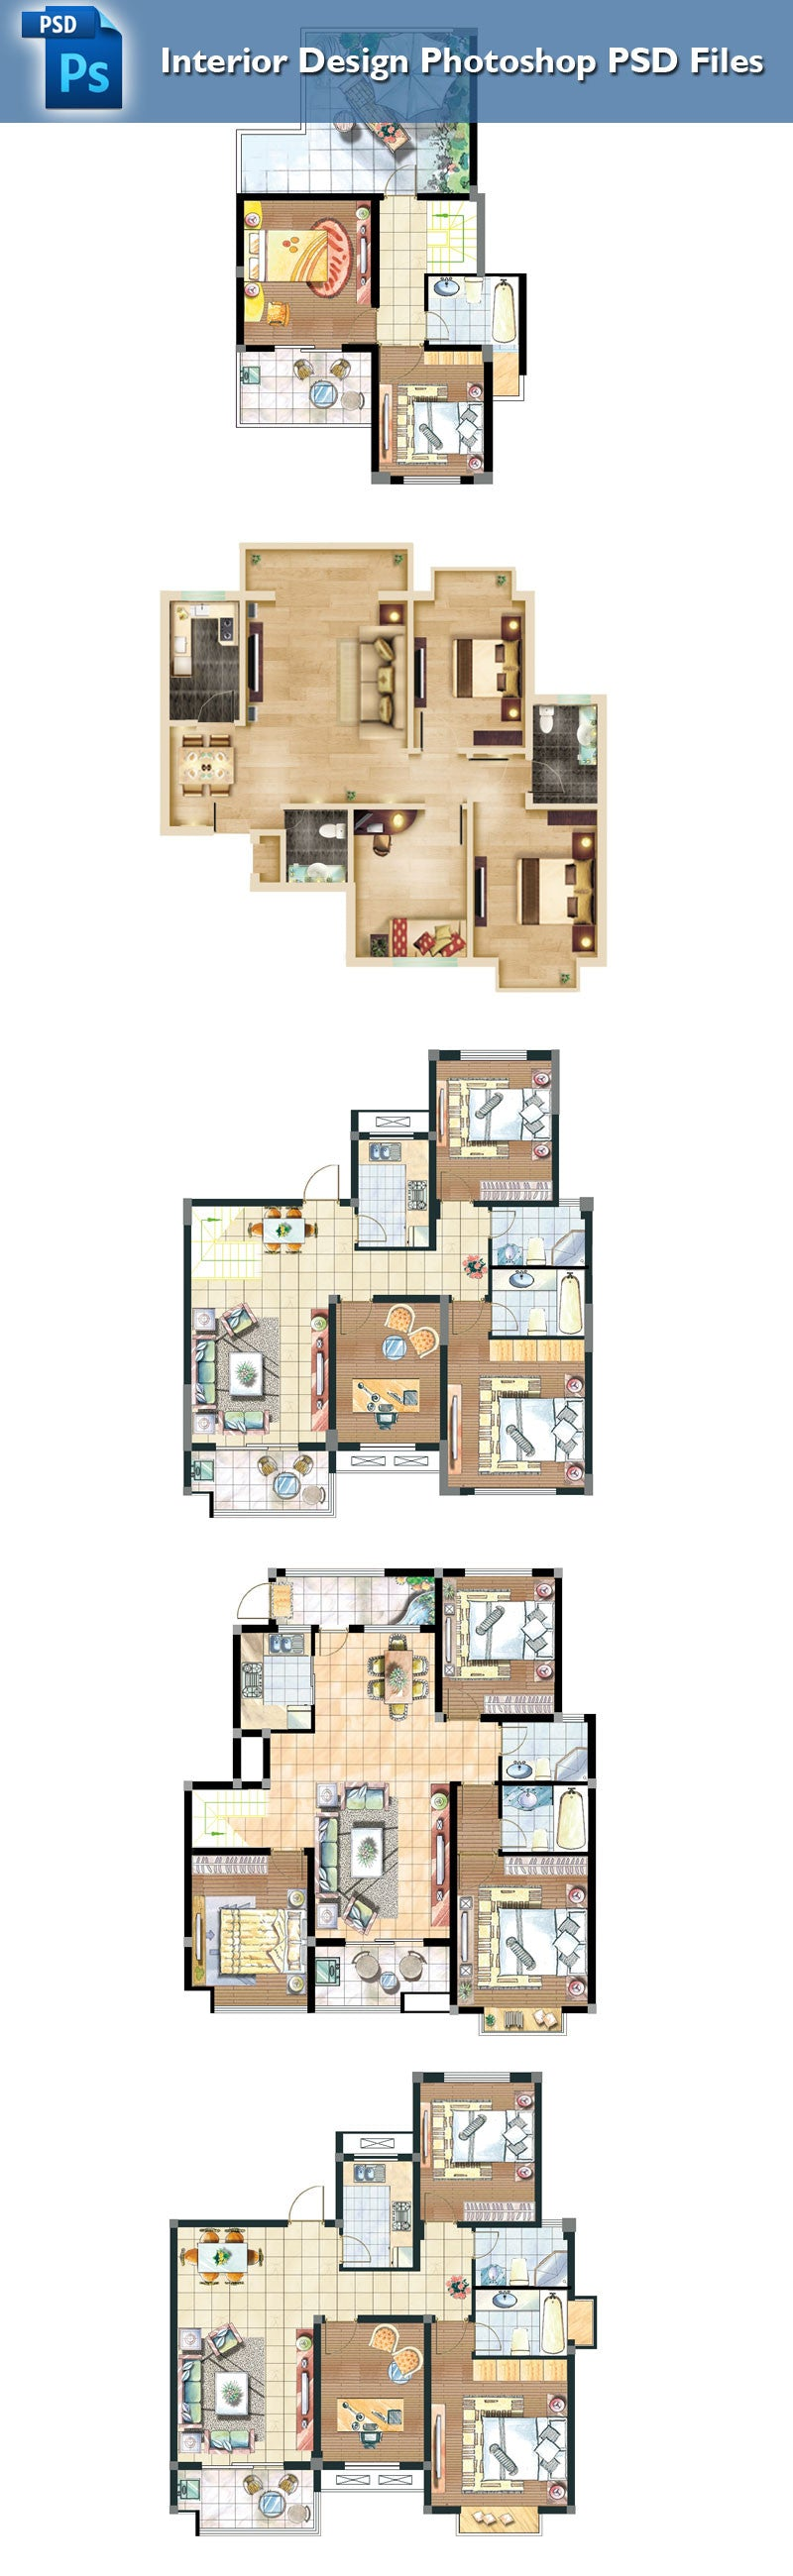 ... 15 Types Of Interior Design Layouts Photoshop PSD Template V.1 ...